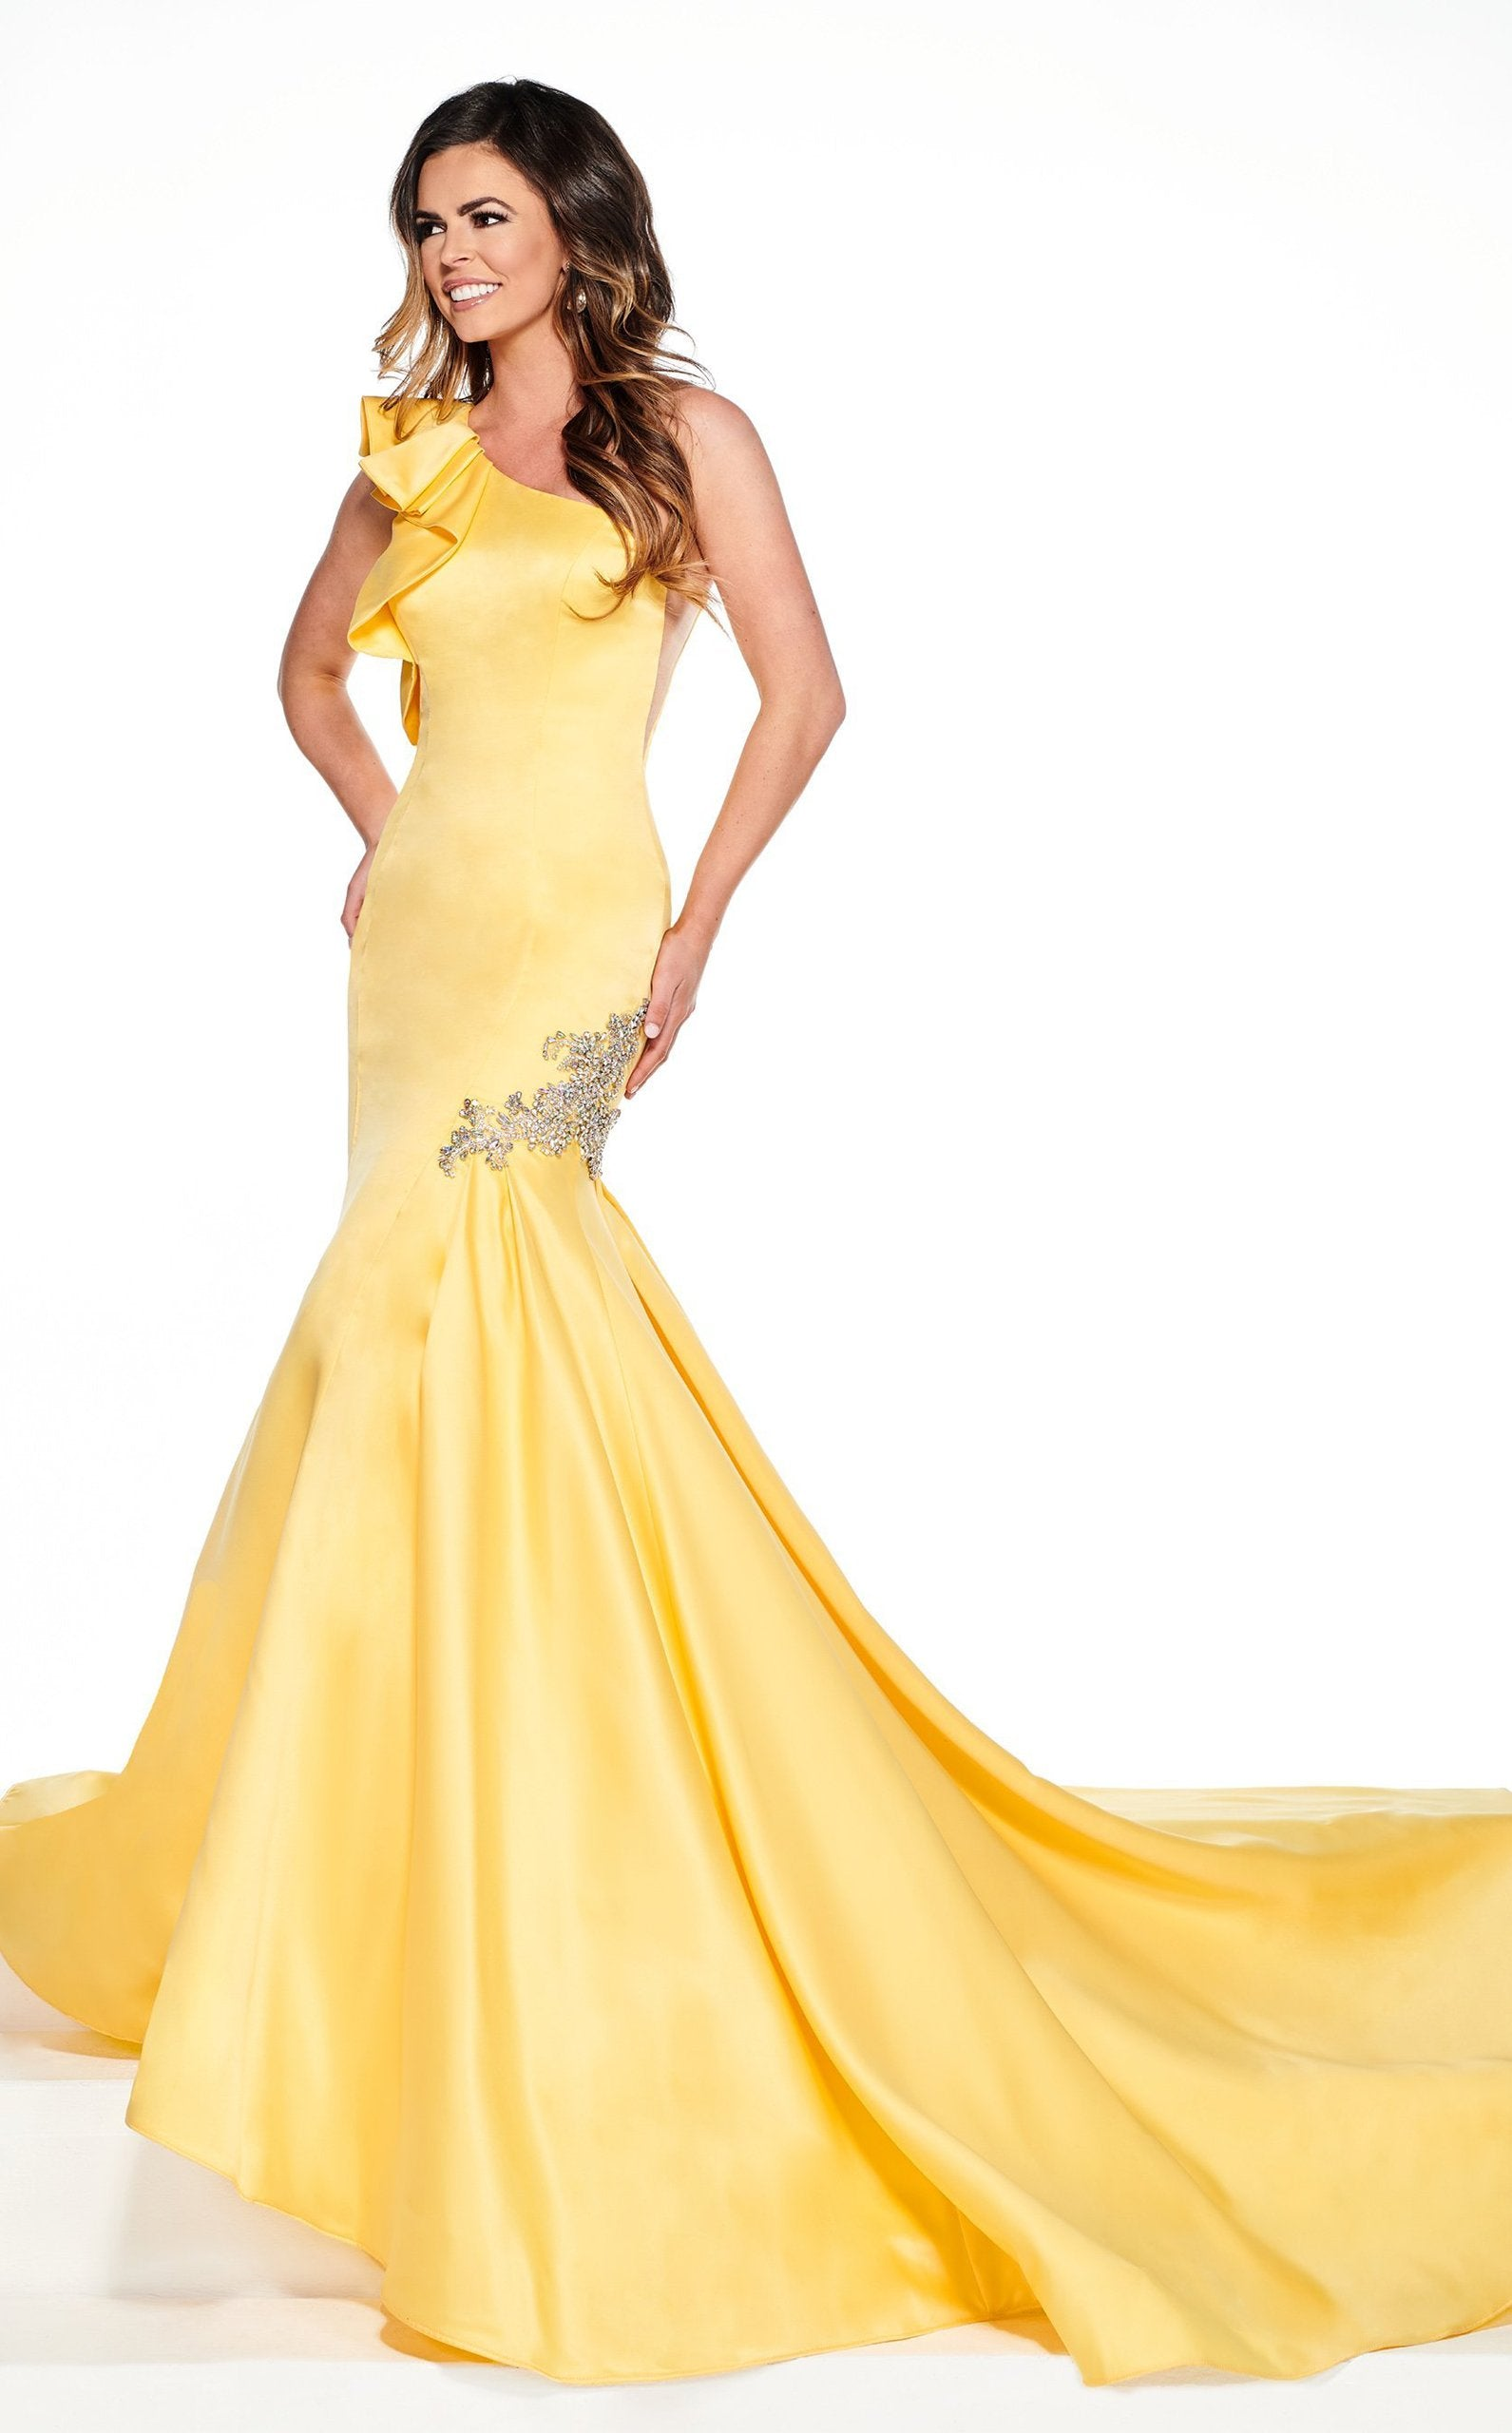 Rachel Allan Primadonna - 5084 Ruffled One Shoulder Satin Mermaid Gown In Yellow